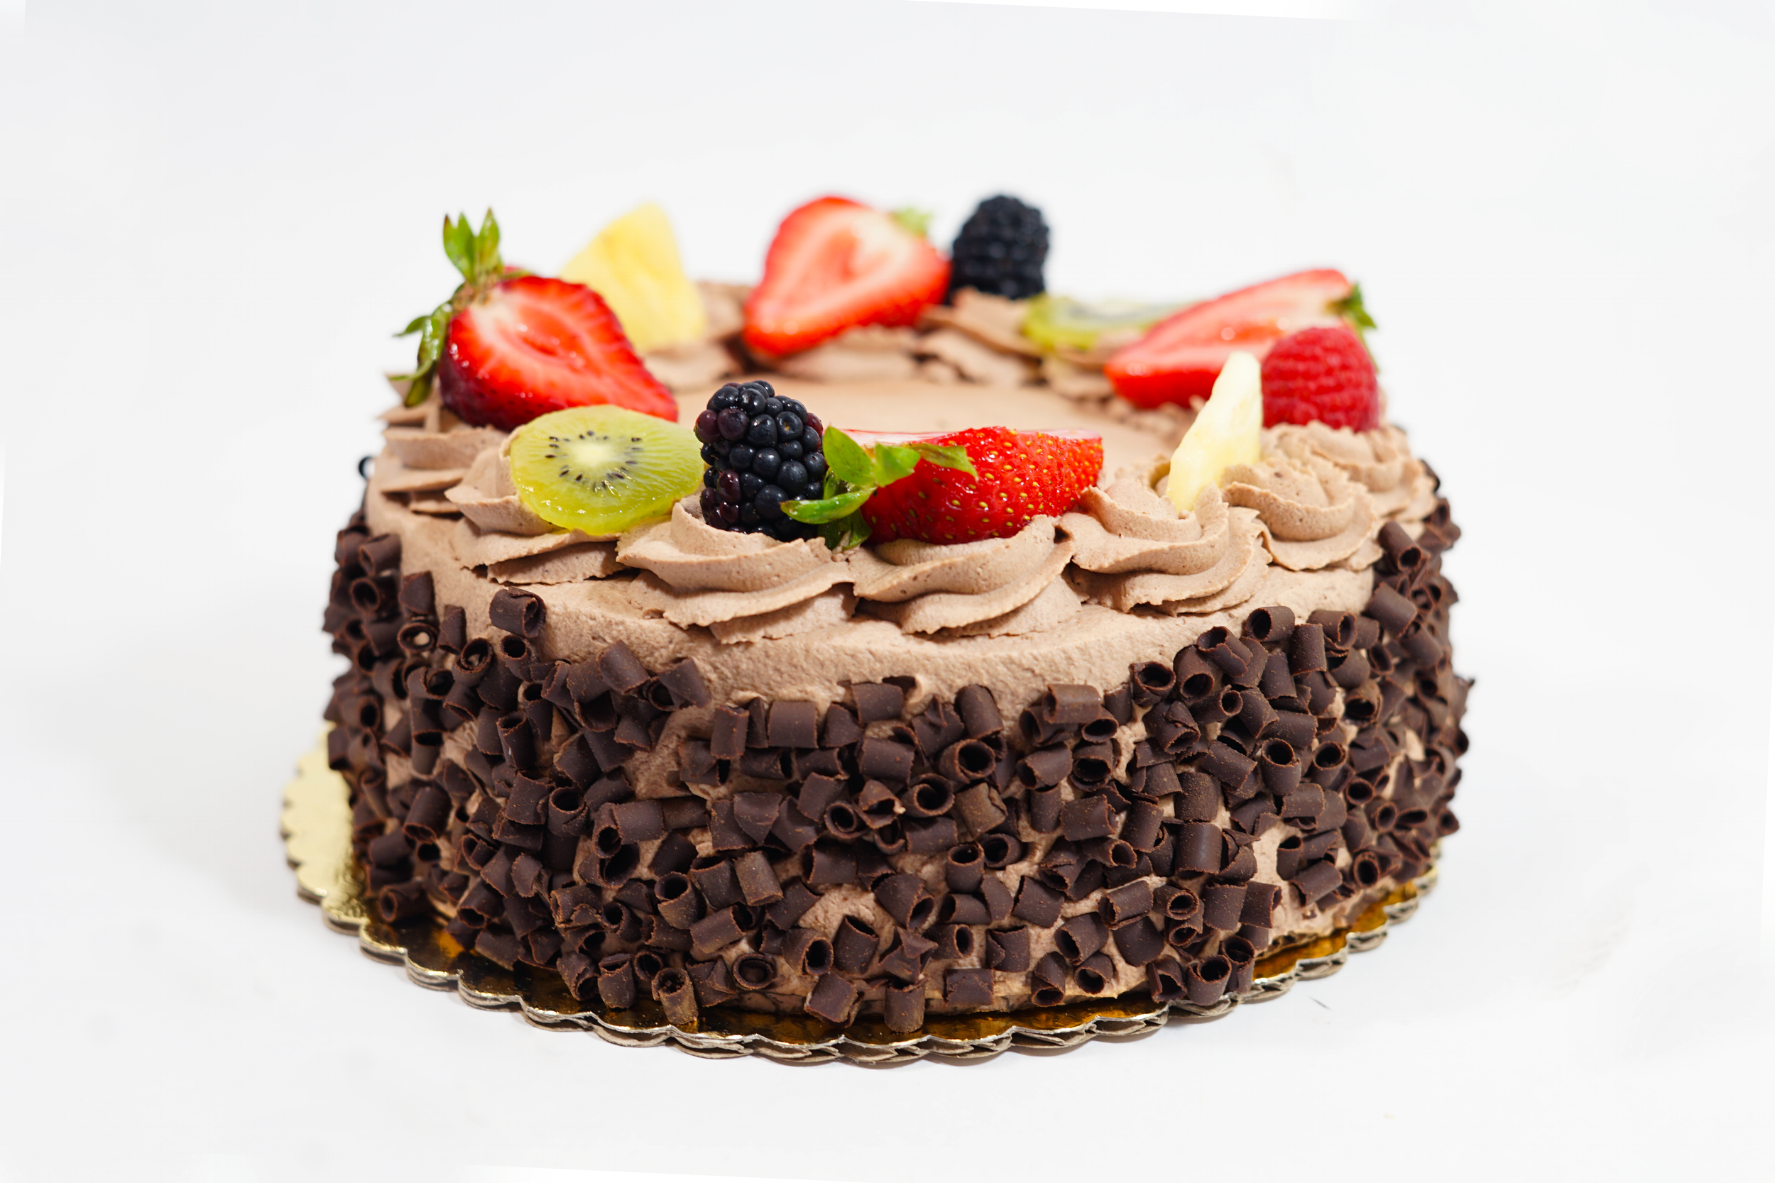 Chocolate Nicois - A chocolate cake with raspberry syrup, chocolate Bavarian cream, raspberry coulis, fresh seasonal fruit filling, and a layer of apricot preserve filling. Iced with chocolate whipped cream and sides covered with chocolate curls.